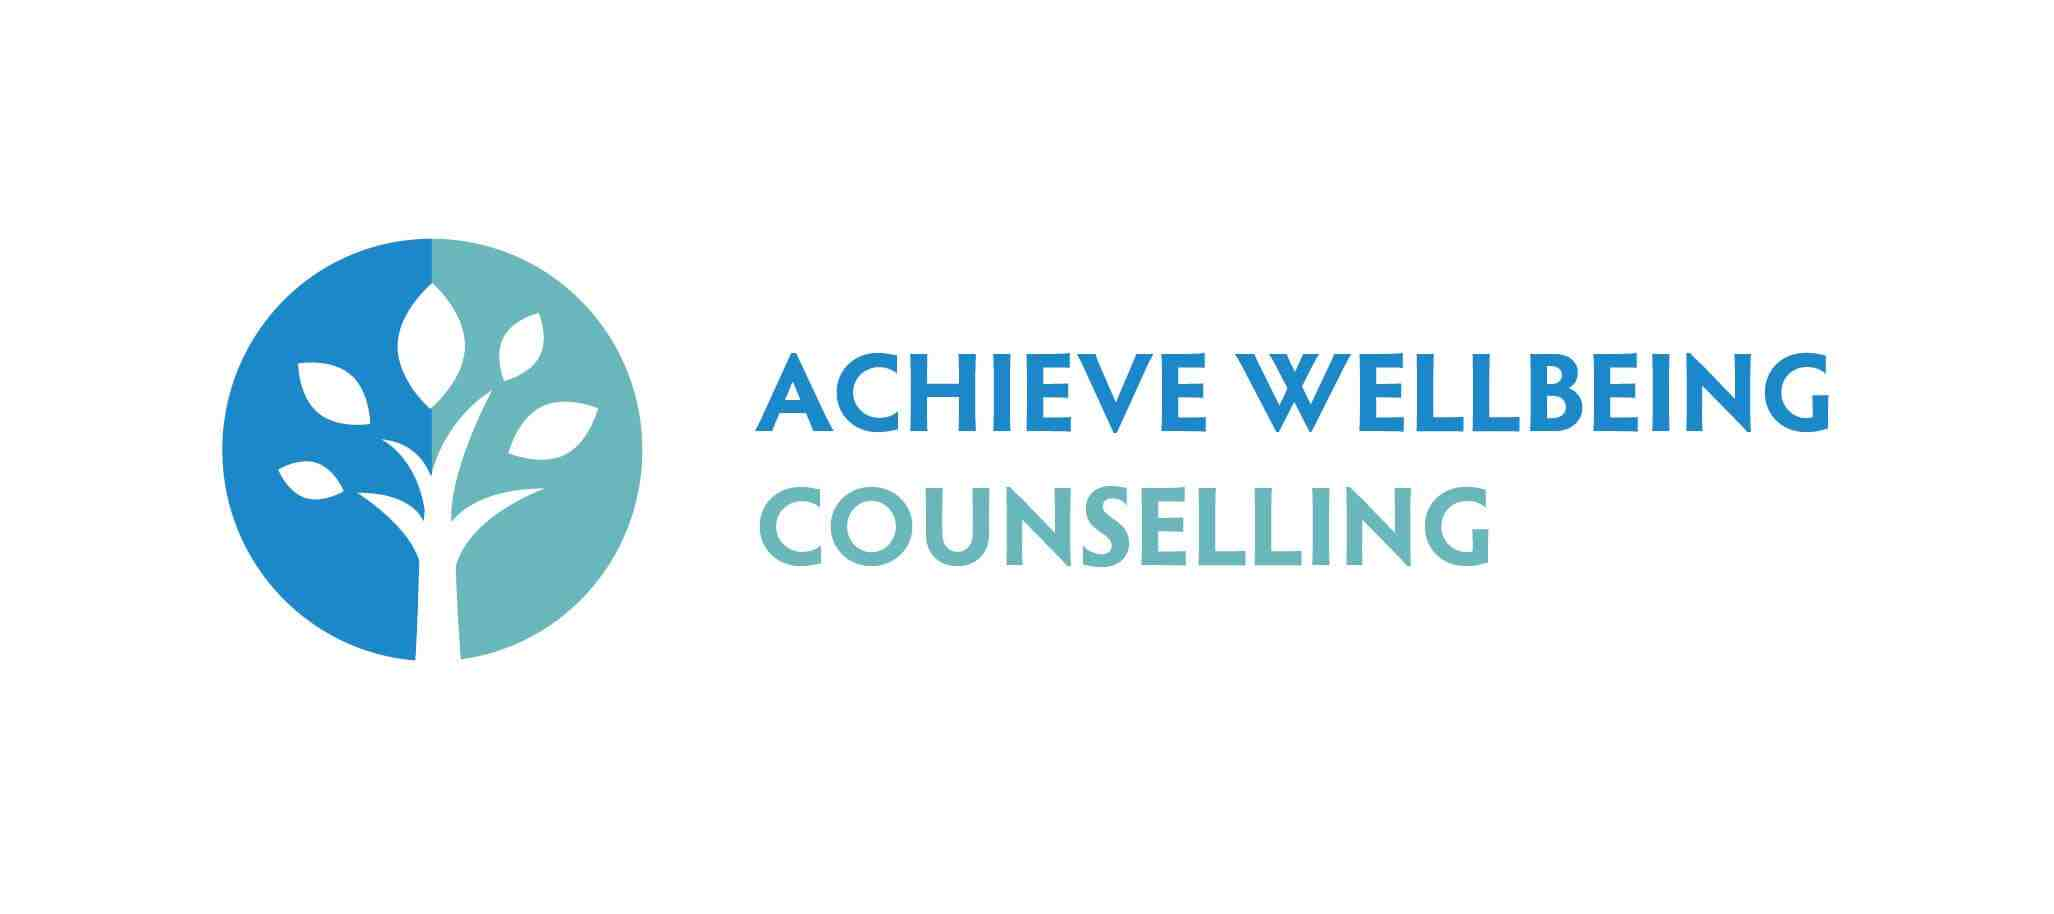 Achieve Wellbeing Counselling Logo